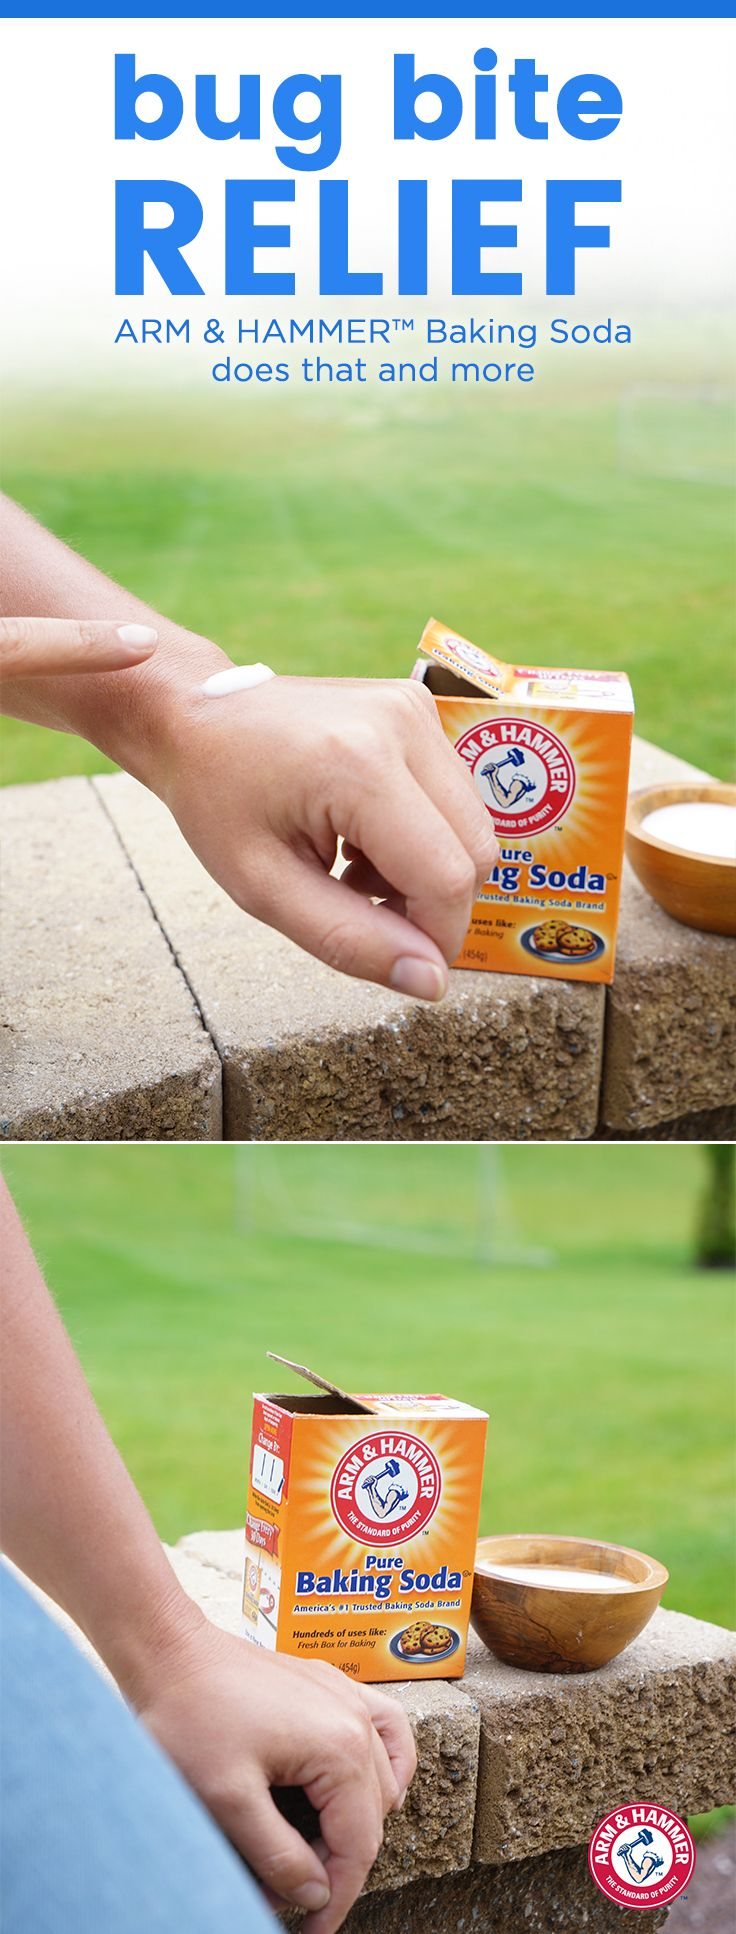 BUG BITE RELIEF Here's the quick and easy way to ditch bug bite itch. Step 1: Make a paste of 3 parts ARM & HAMMER™ Baking Soda and 1 part water Step 2: Apply to irritated area as needed or as directed by a doctor* Step 3: Pat dry to form a thin layer on skin     *Keep baking soda away from eyes. Soaking too long may over-dry skin. If conditions worsen, persist or recur, stop using and ask your doctor. Please see our 2-lb. package for complete drug facts.